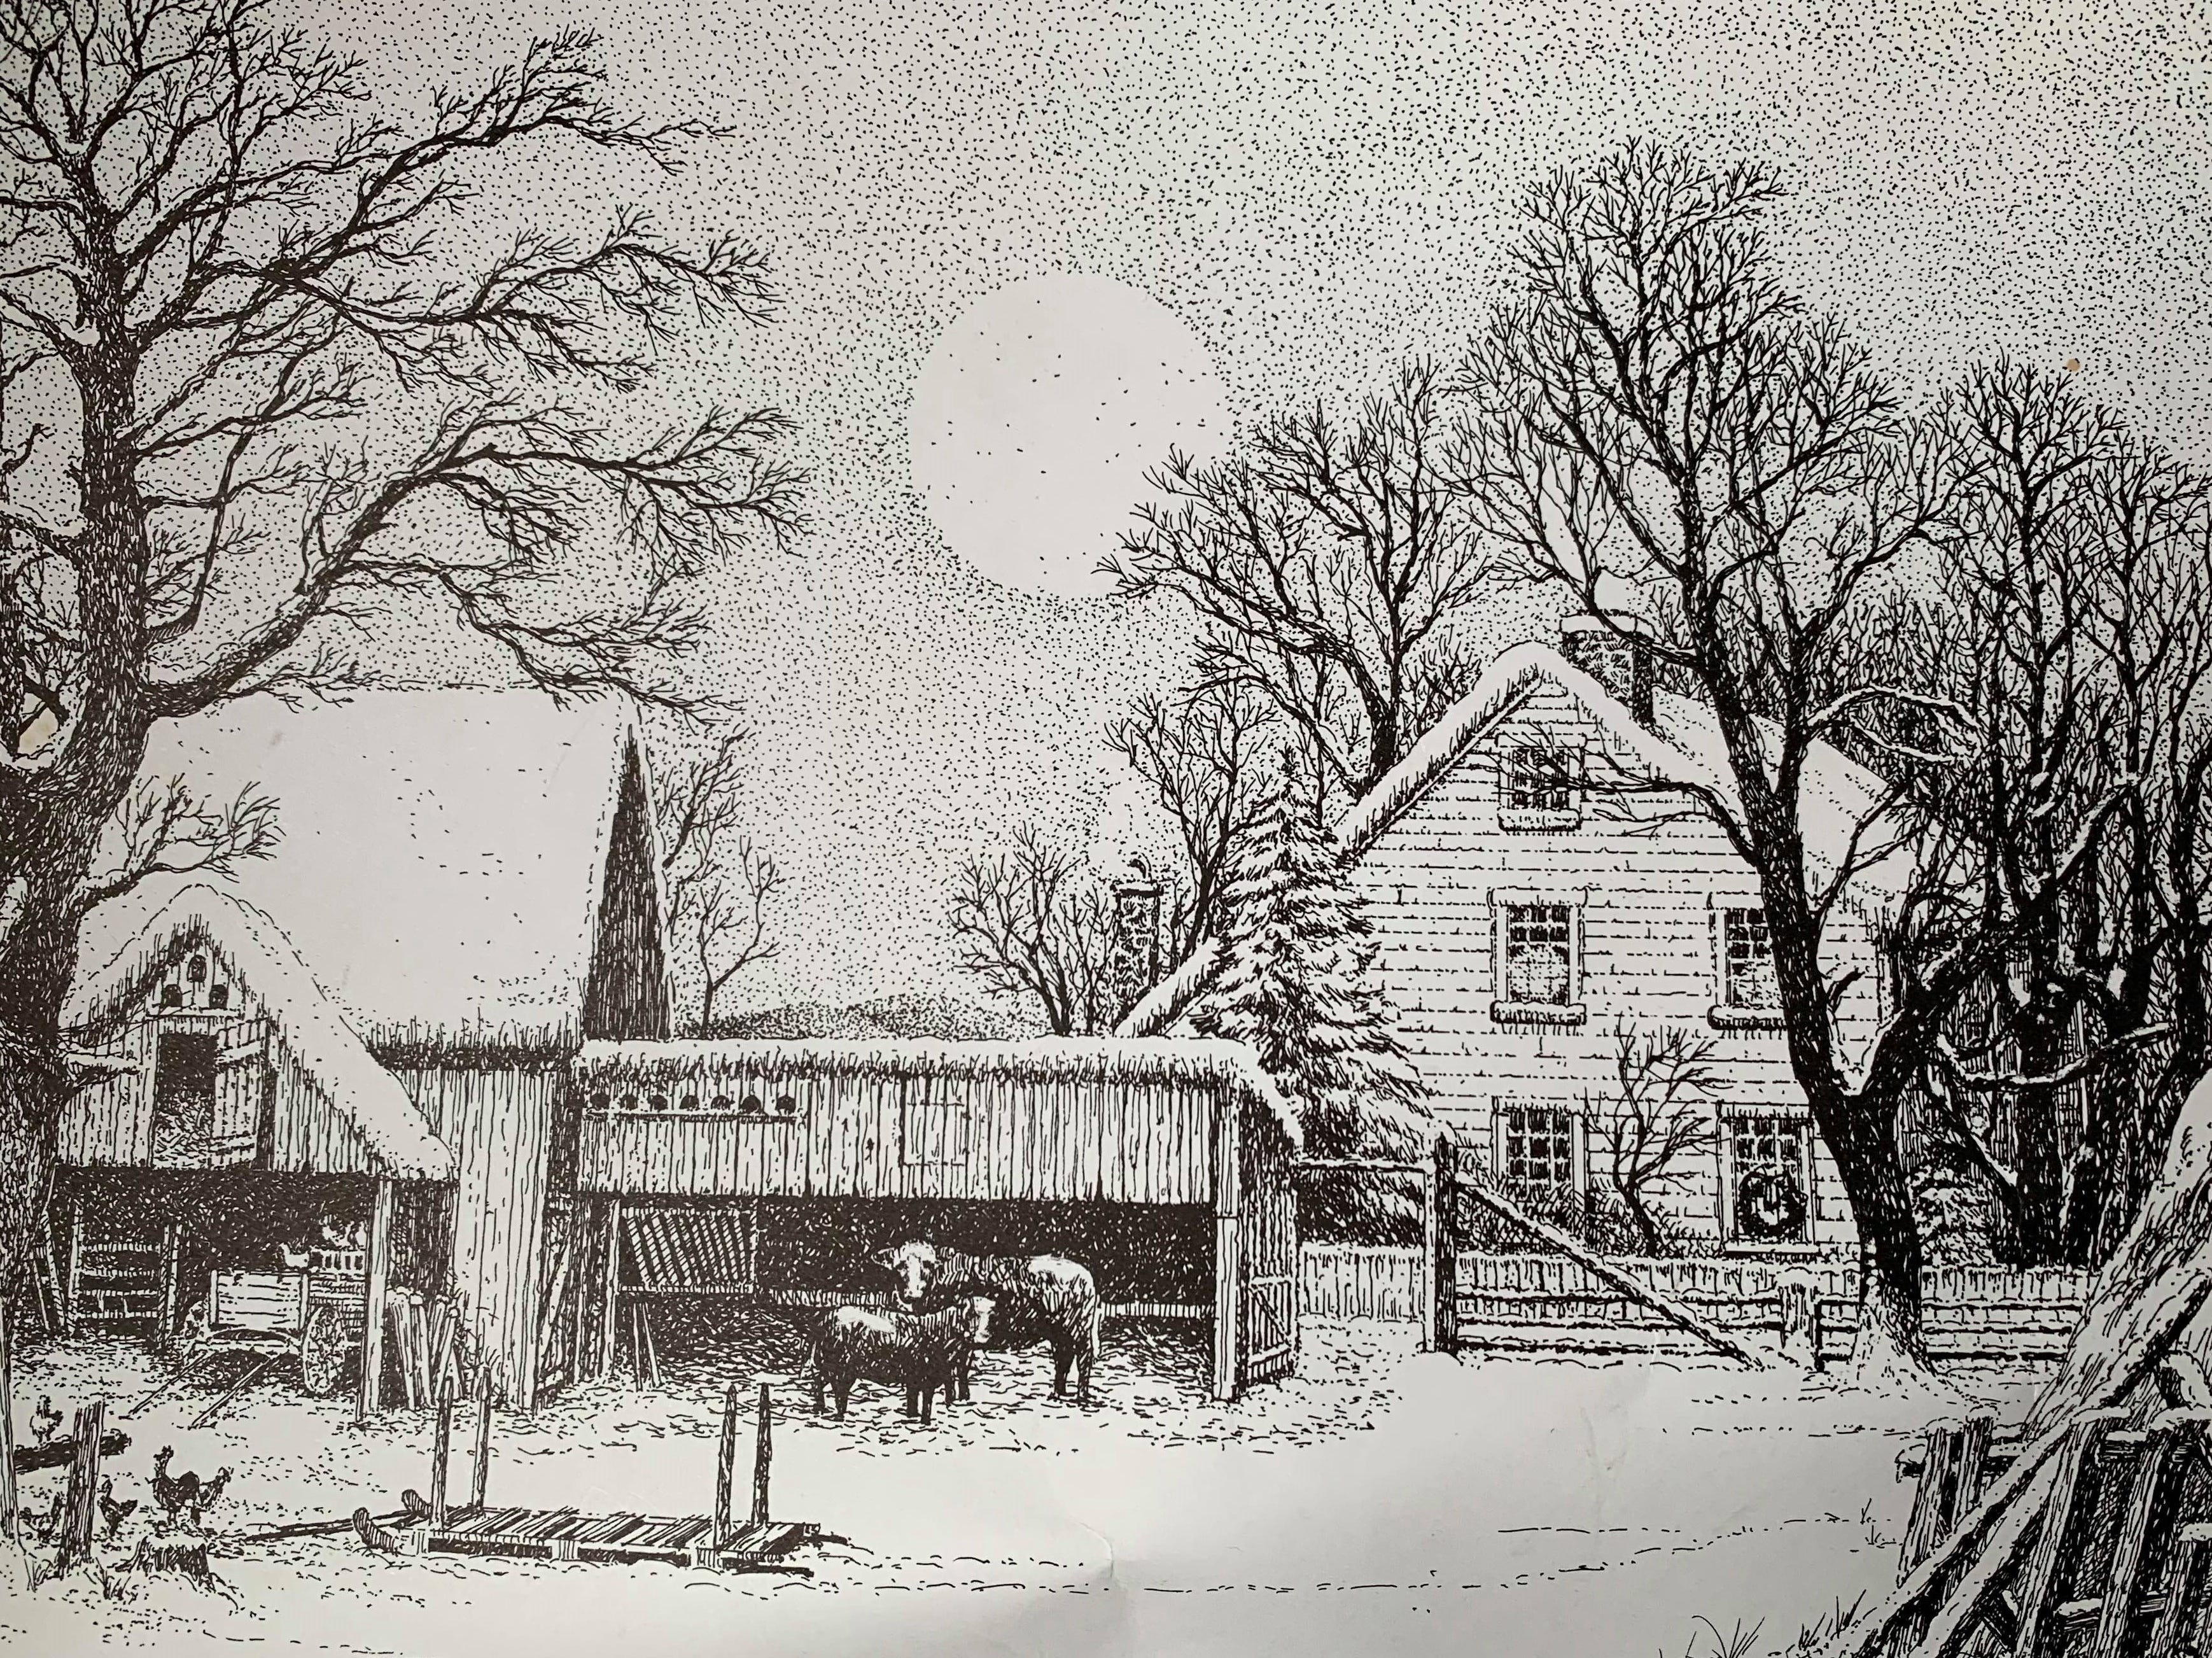 This print of a winter farm scene was among the prints Thom Van Benschoten gave employees for Christmas each year.